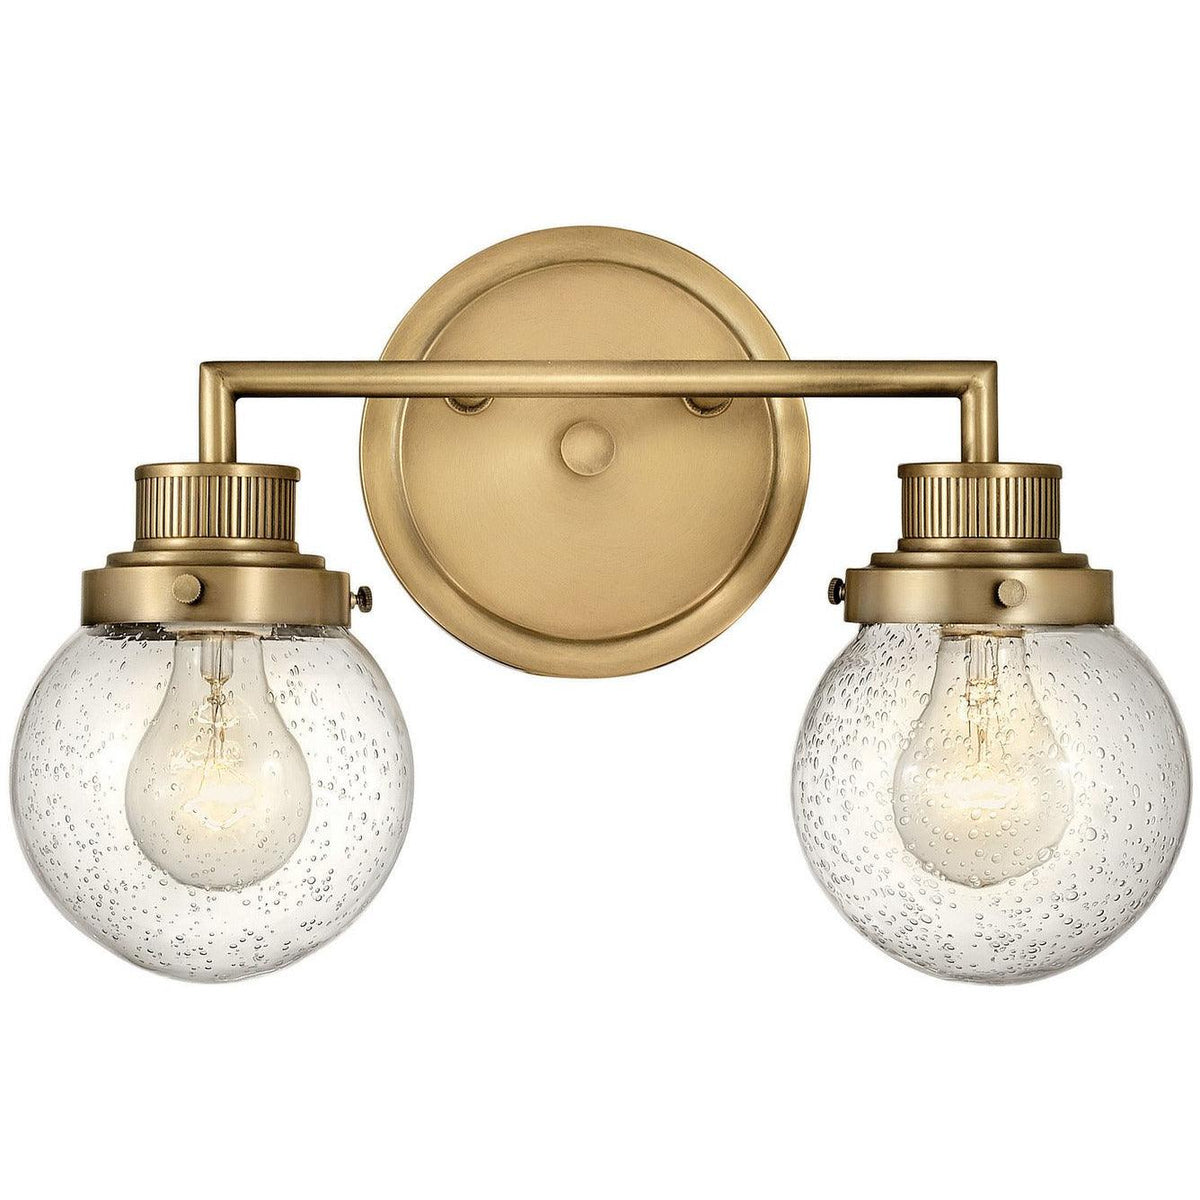 Hinkley Canada - 5932HB - Two Light Bath - Poppy - Heritage Brass